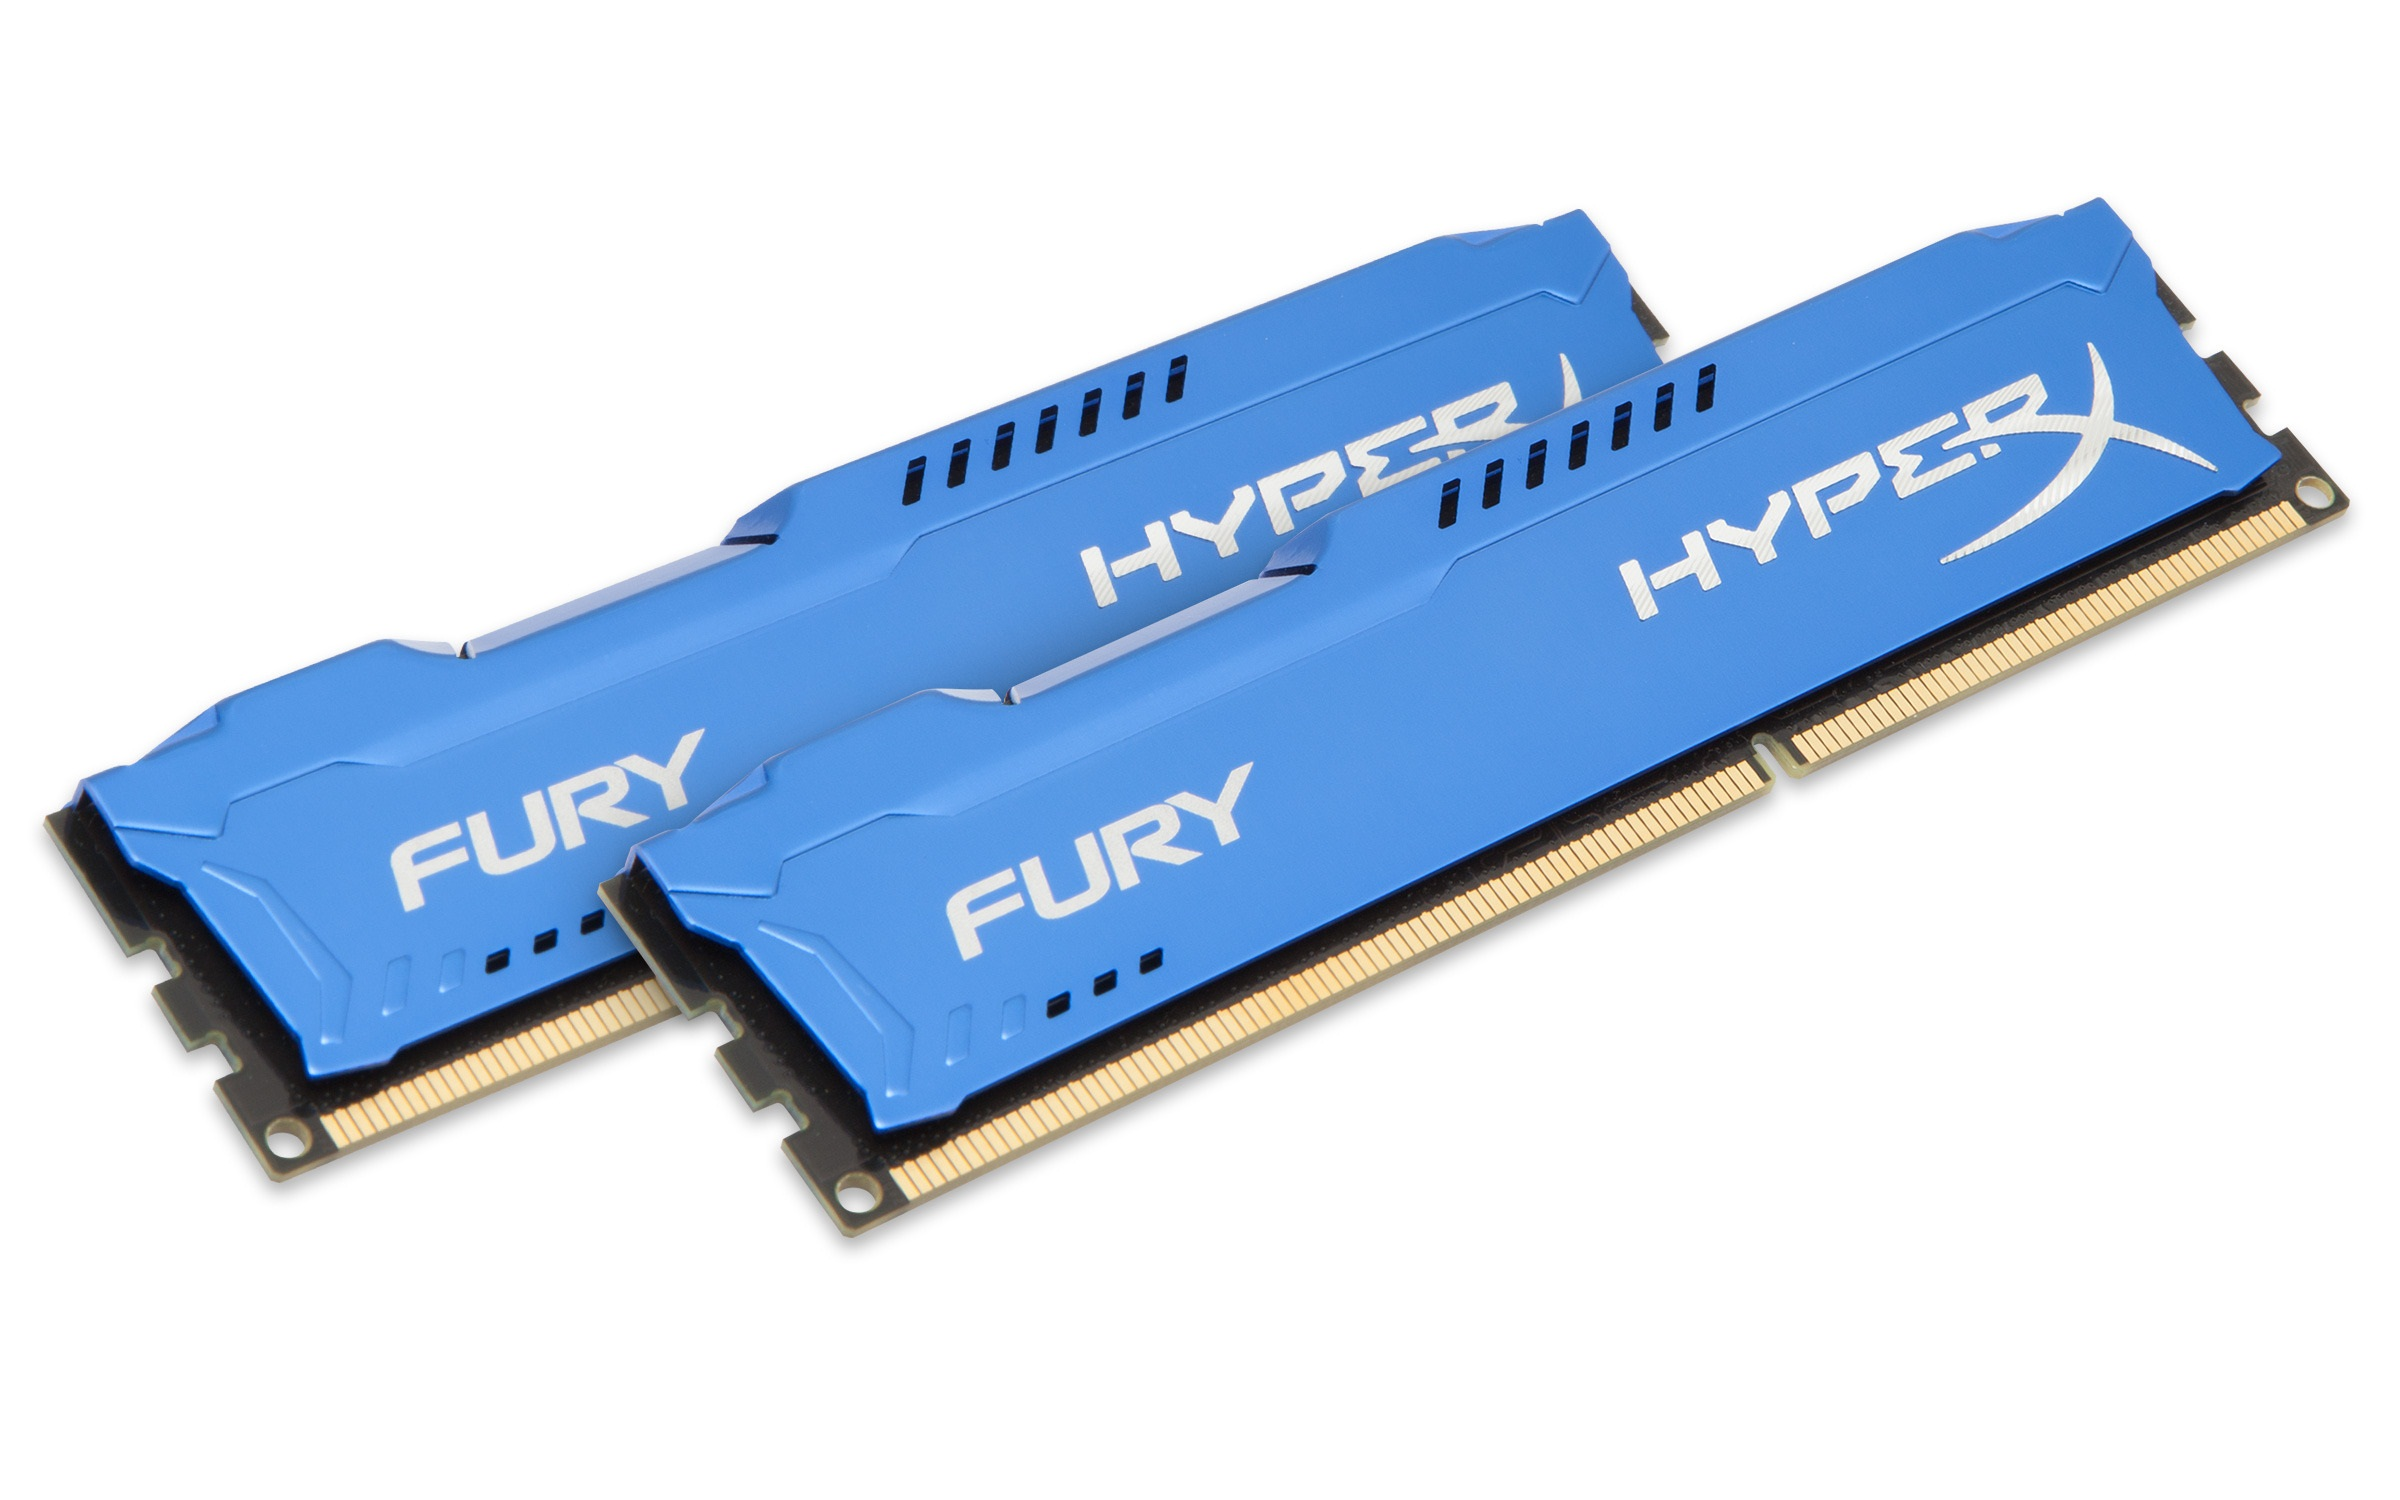 Kingston DDR3 8GB (Kit 2x4GB) HyperX FURY DIMM 1333MHz CL9 modrá